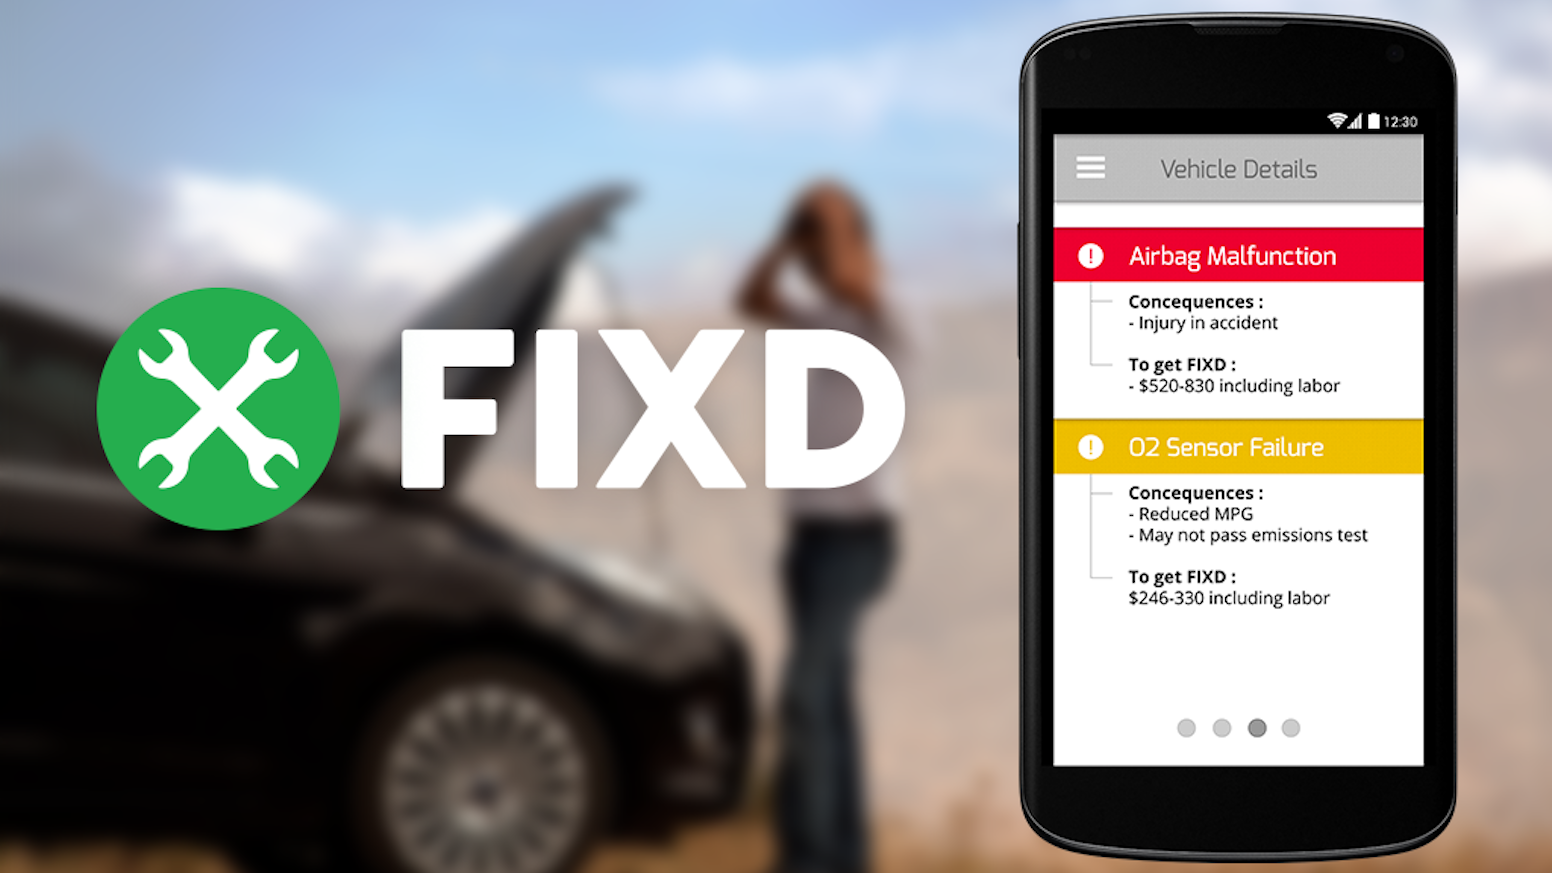 FIXD: Your car is talking to you, are you listening? by FIXD